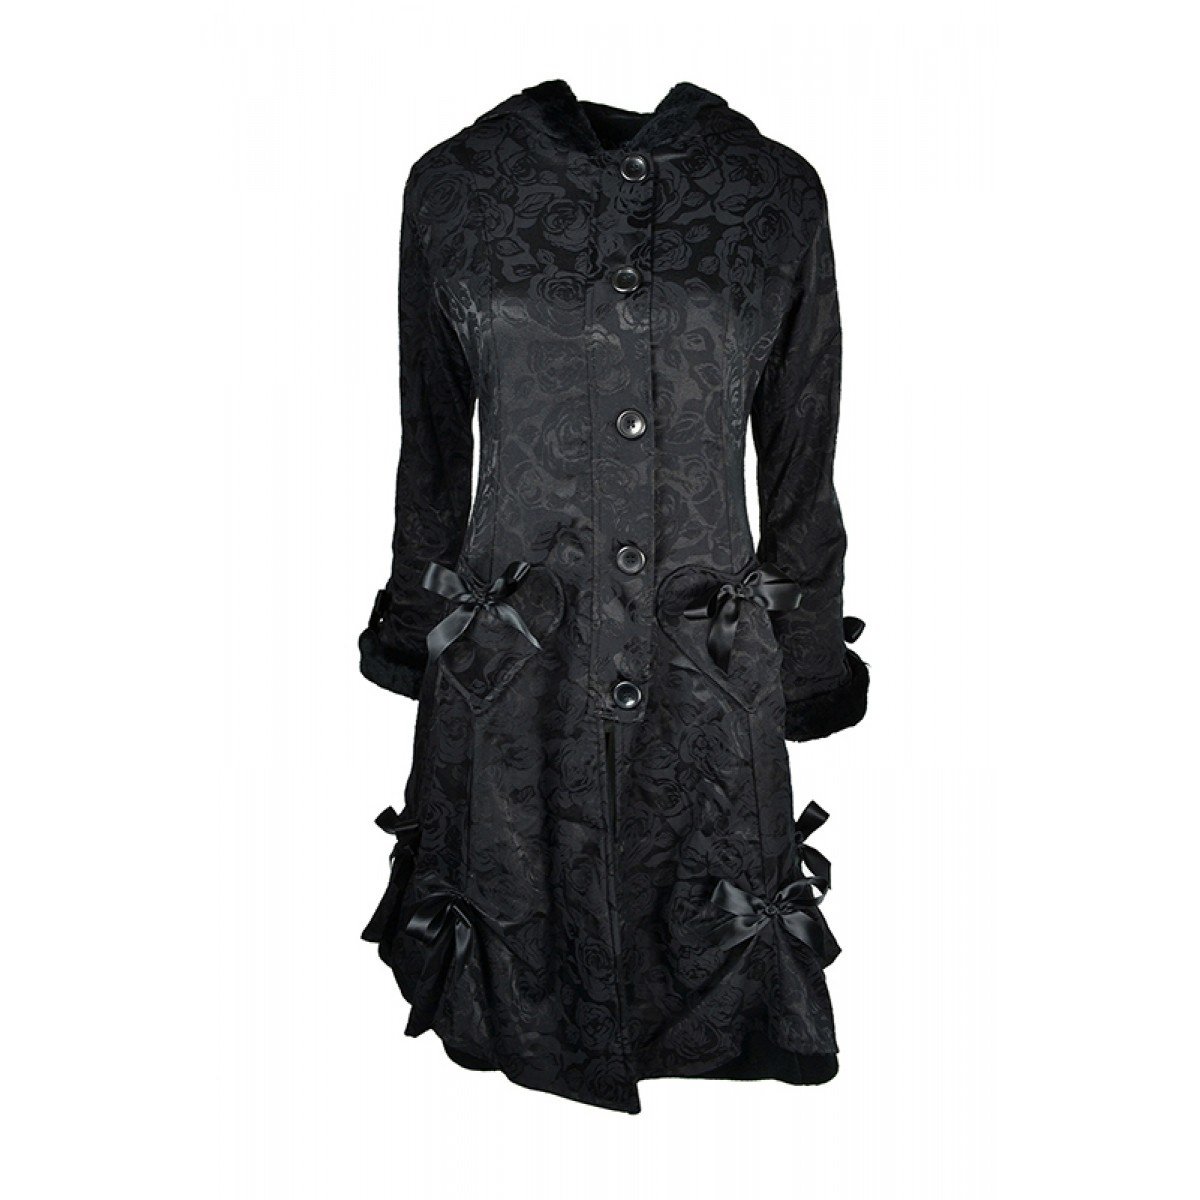 rebelsmarket_alice_coat_black_rose_poizen_industries_coats_4.jpg